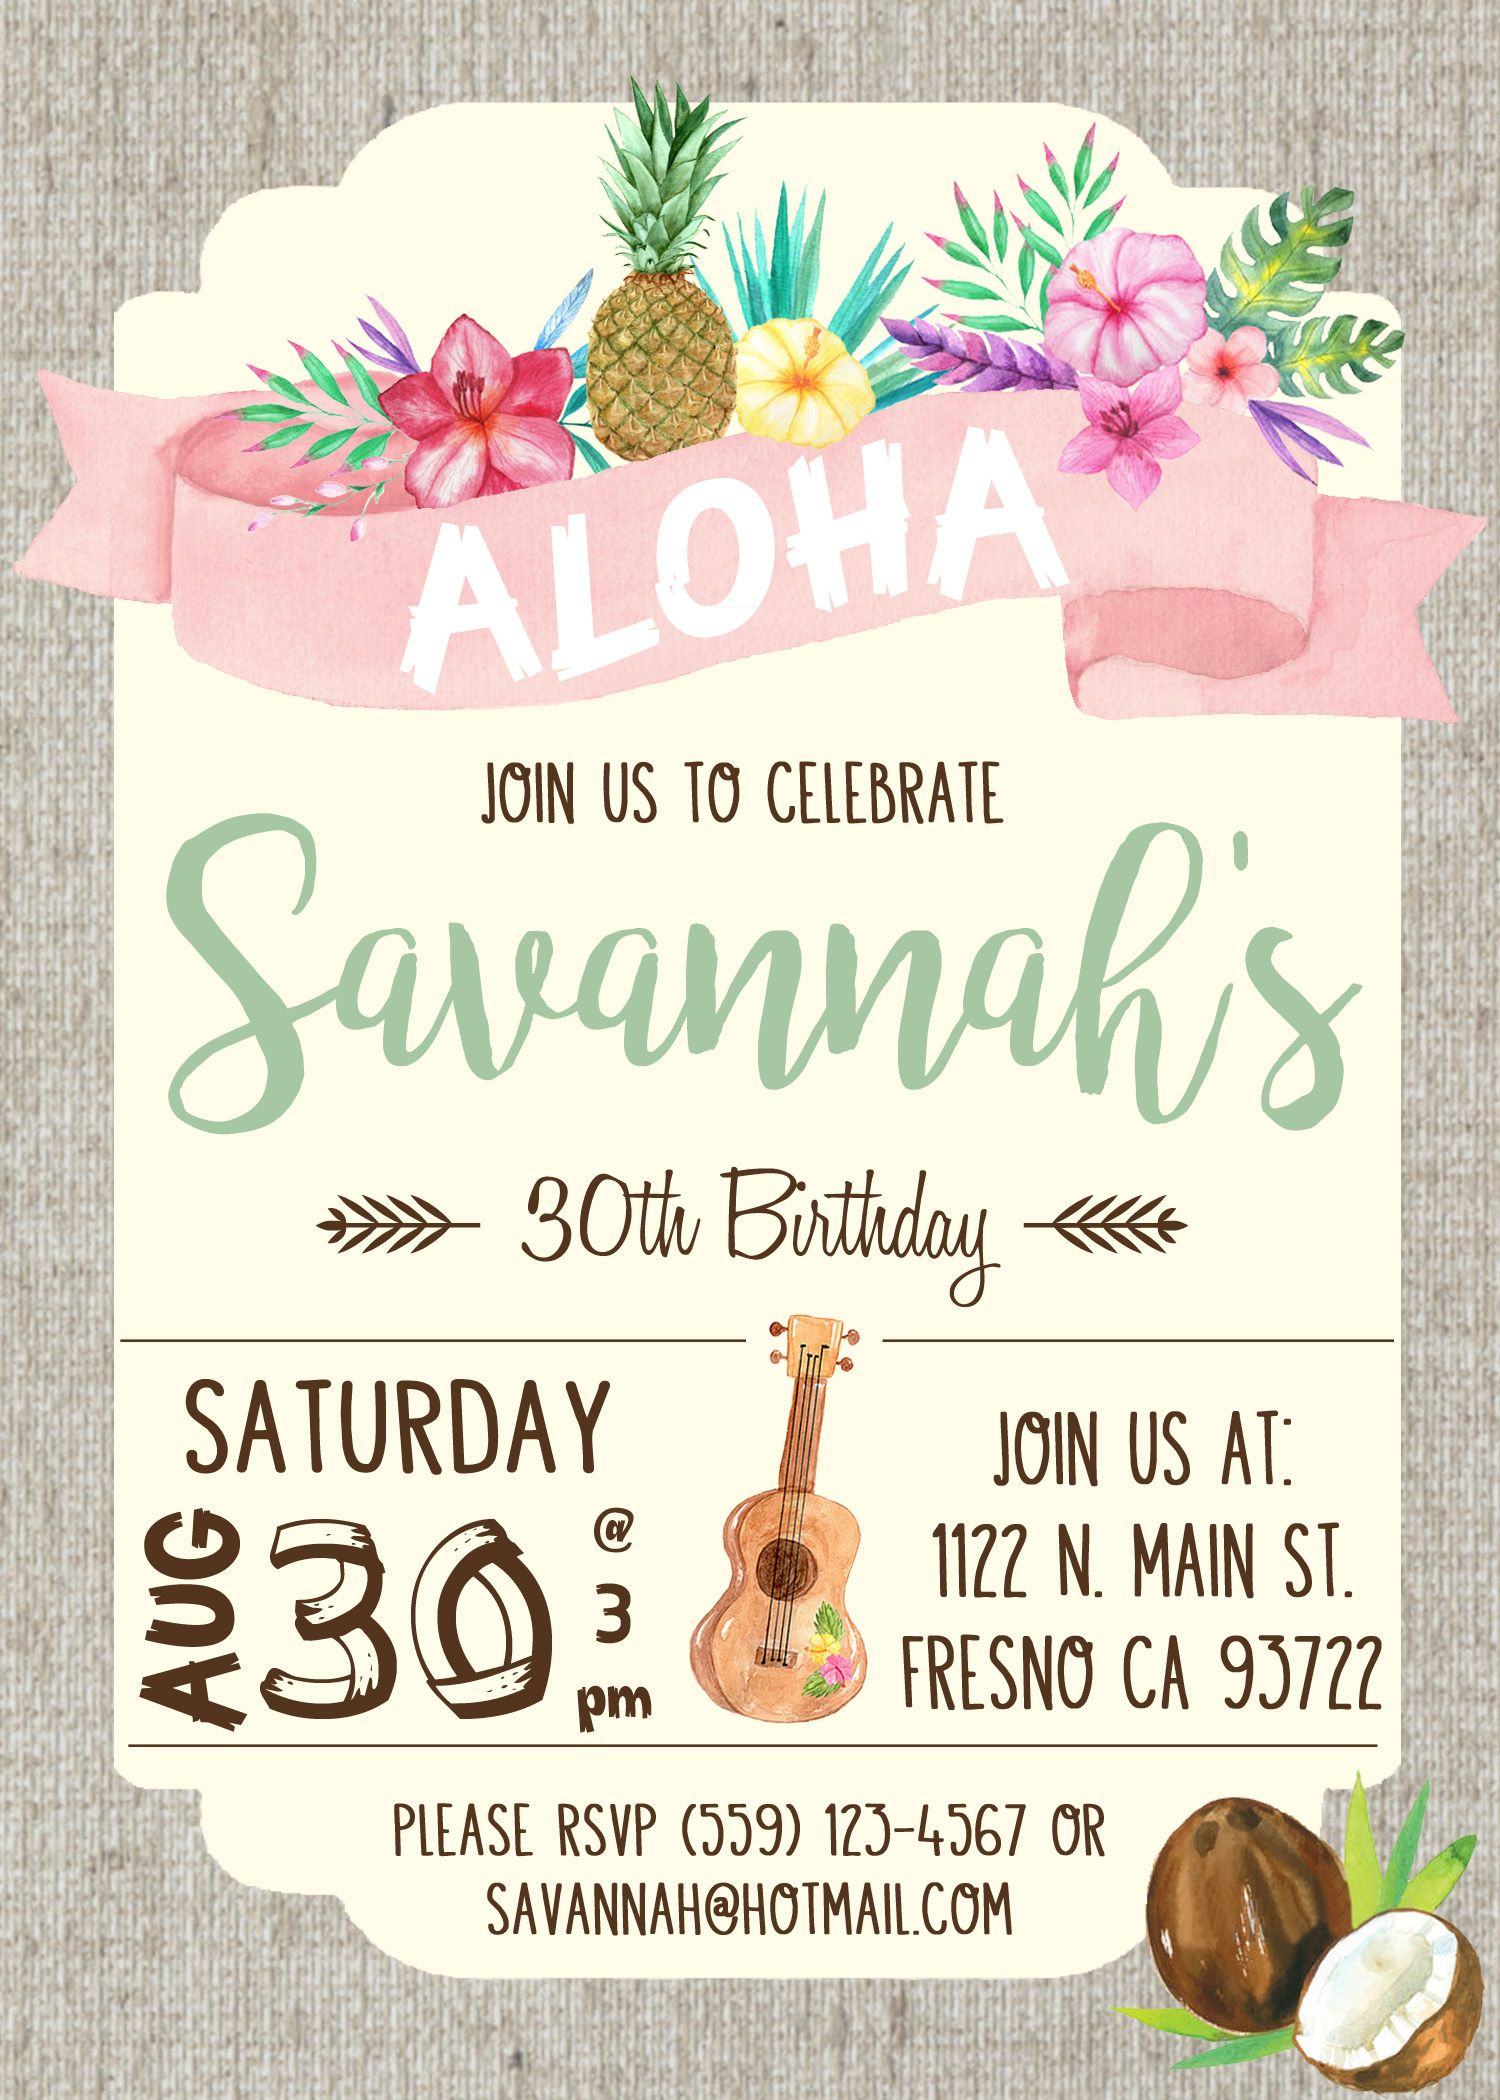 Hawaiian Luau Birthday Party Invitation Invite Watercolor Flowers ...